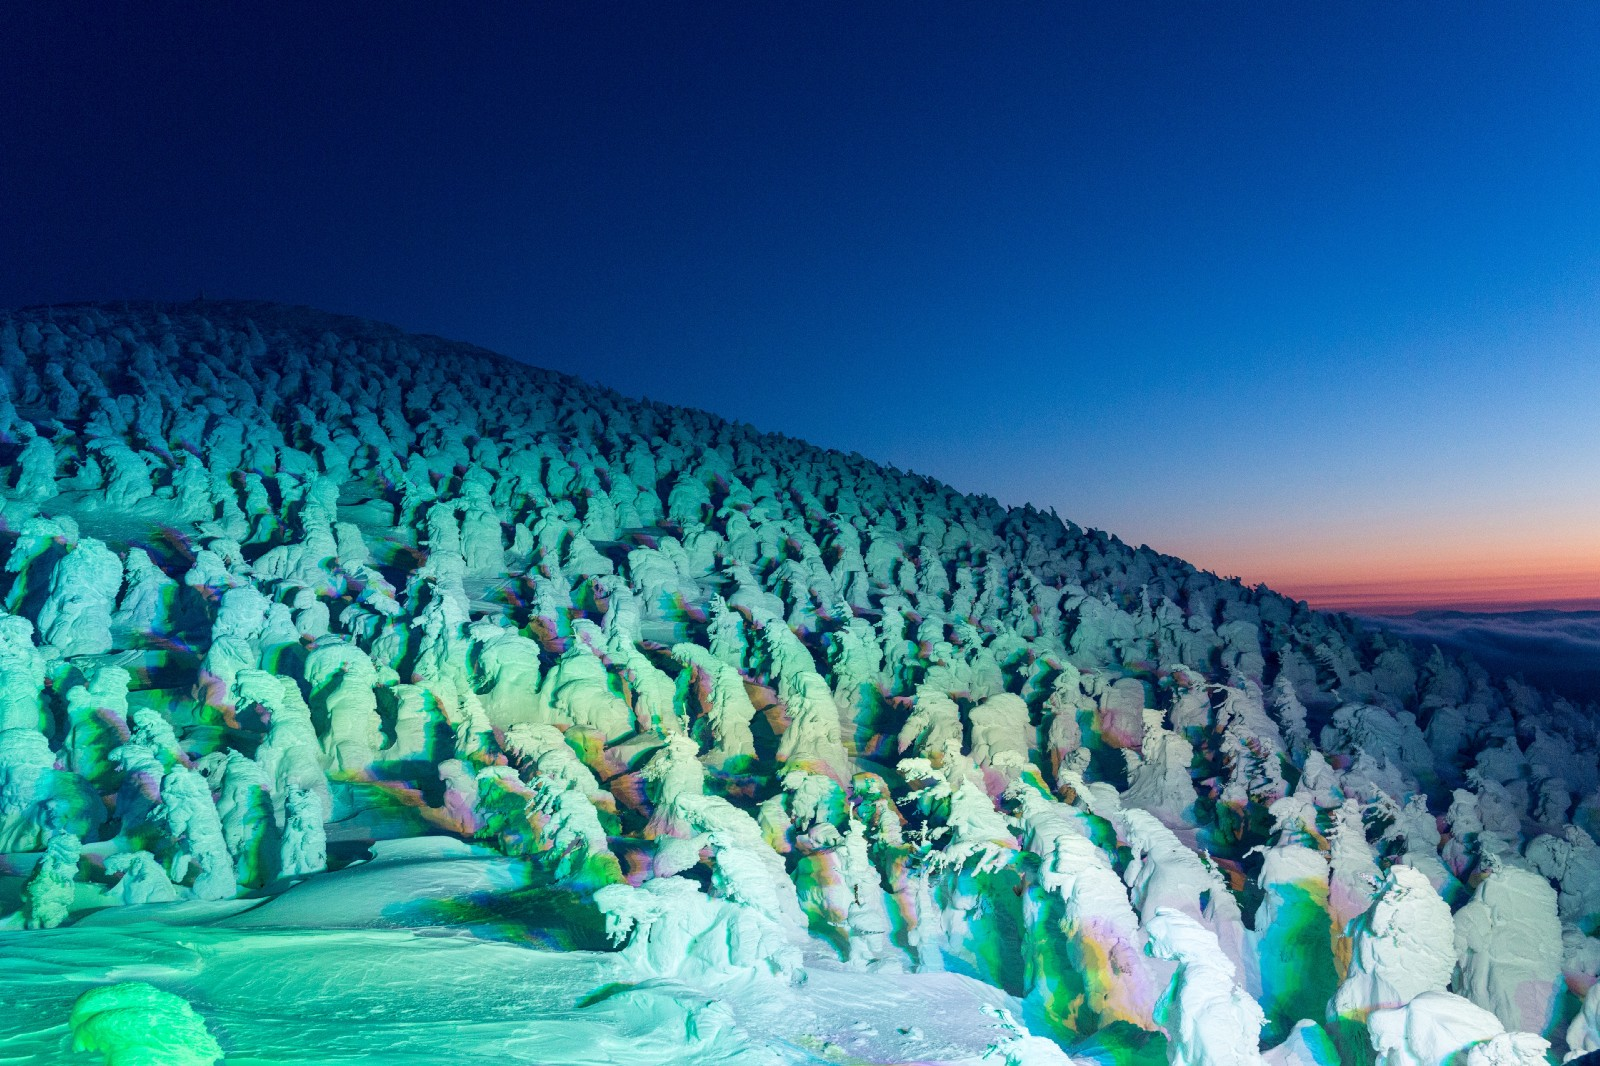 Illuminated snow monsters in Zao